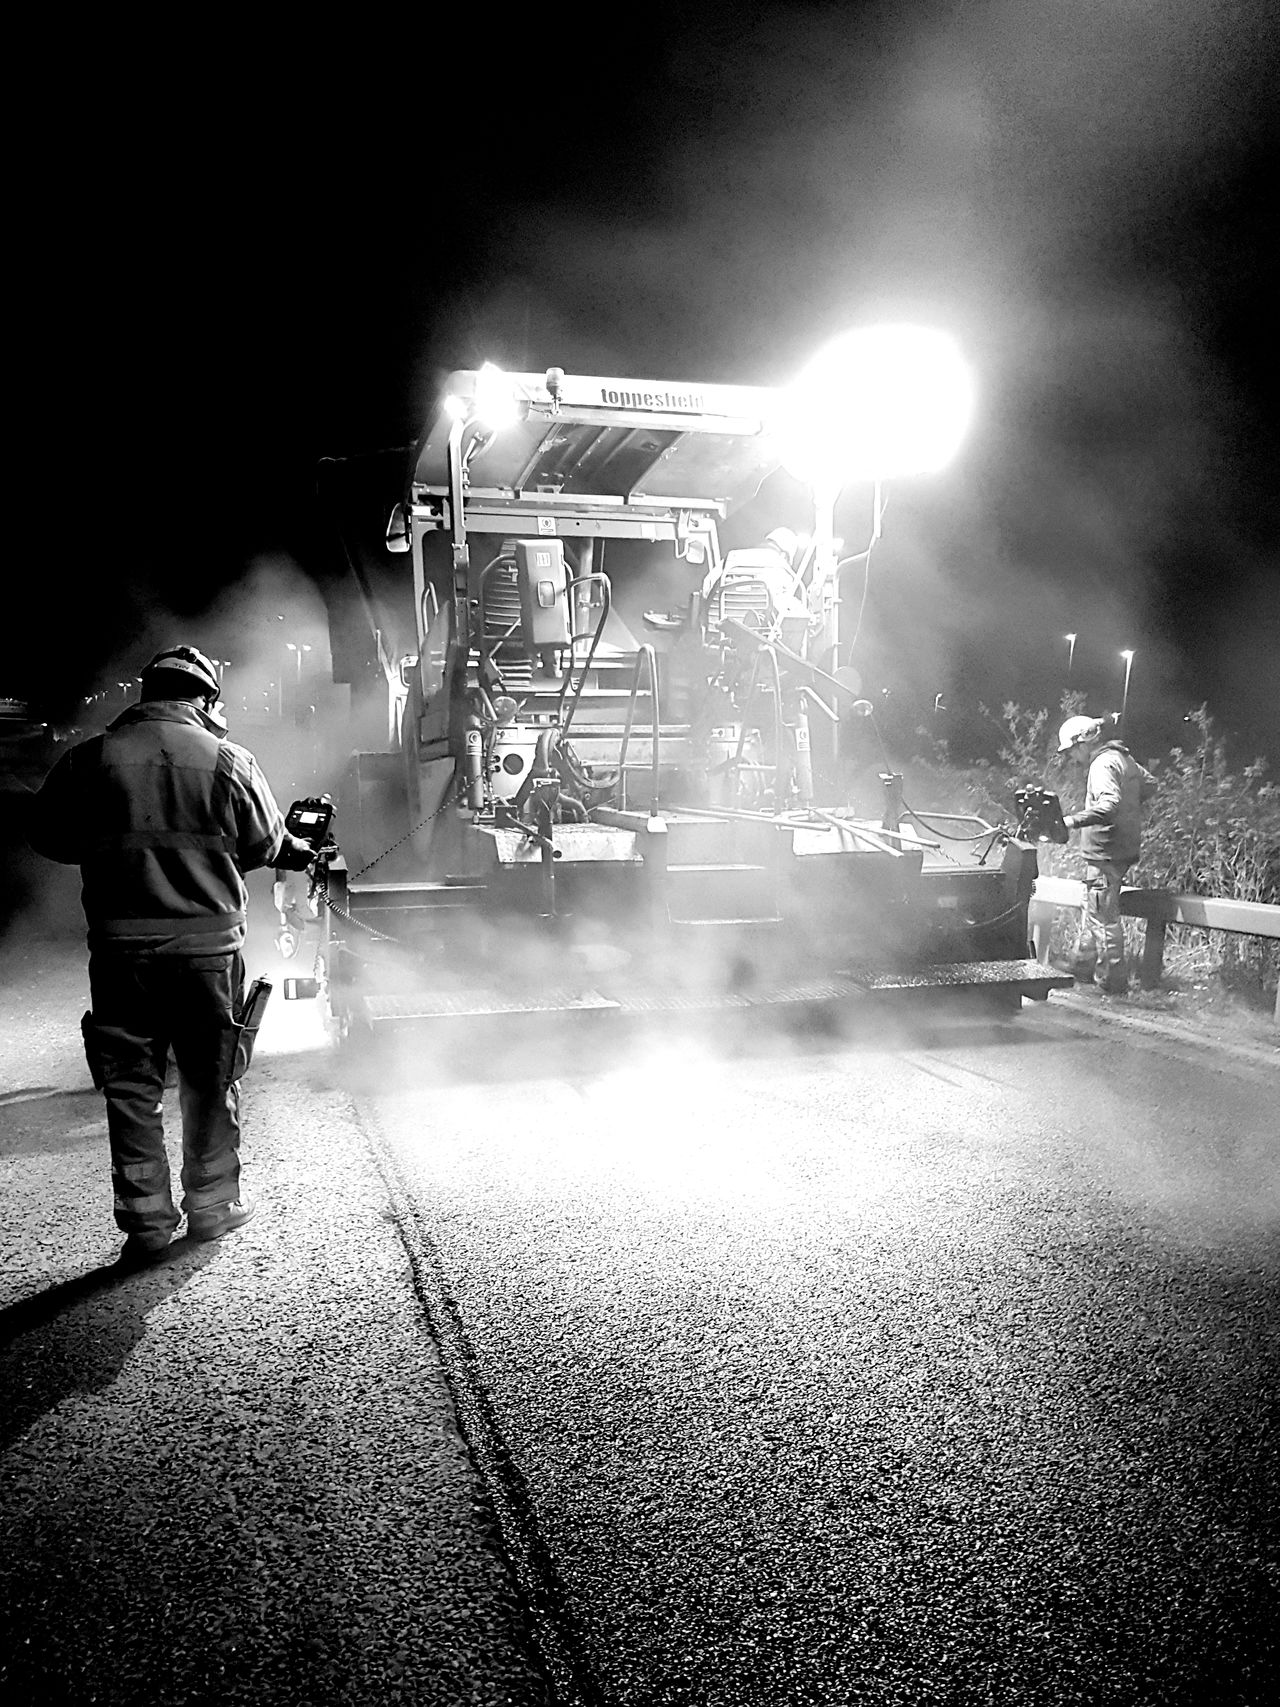 Night Construction Works Surfacing Workers. Black And White Photography